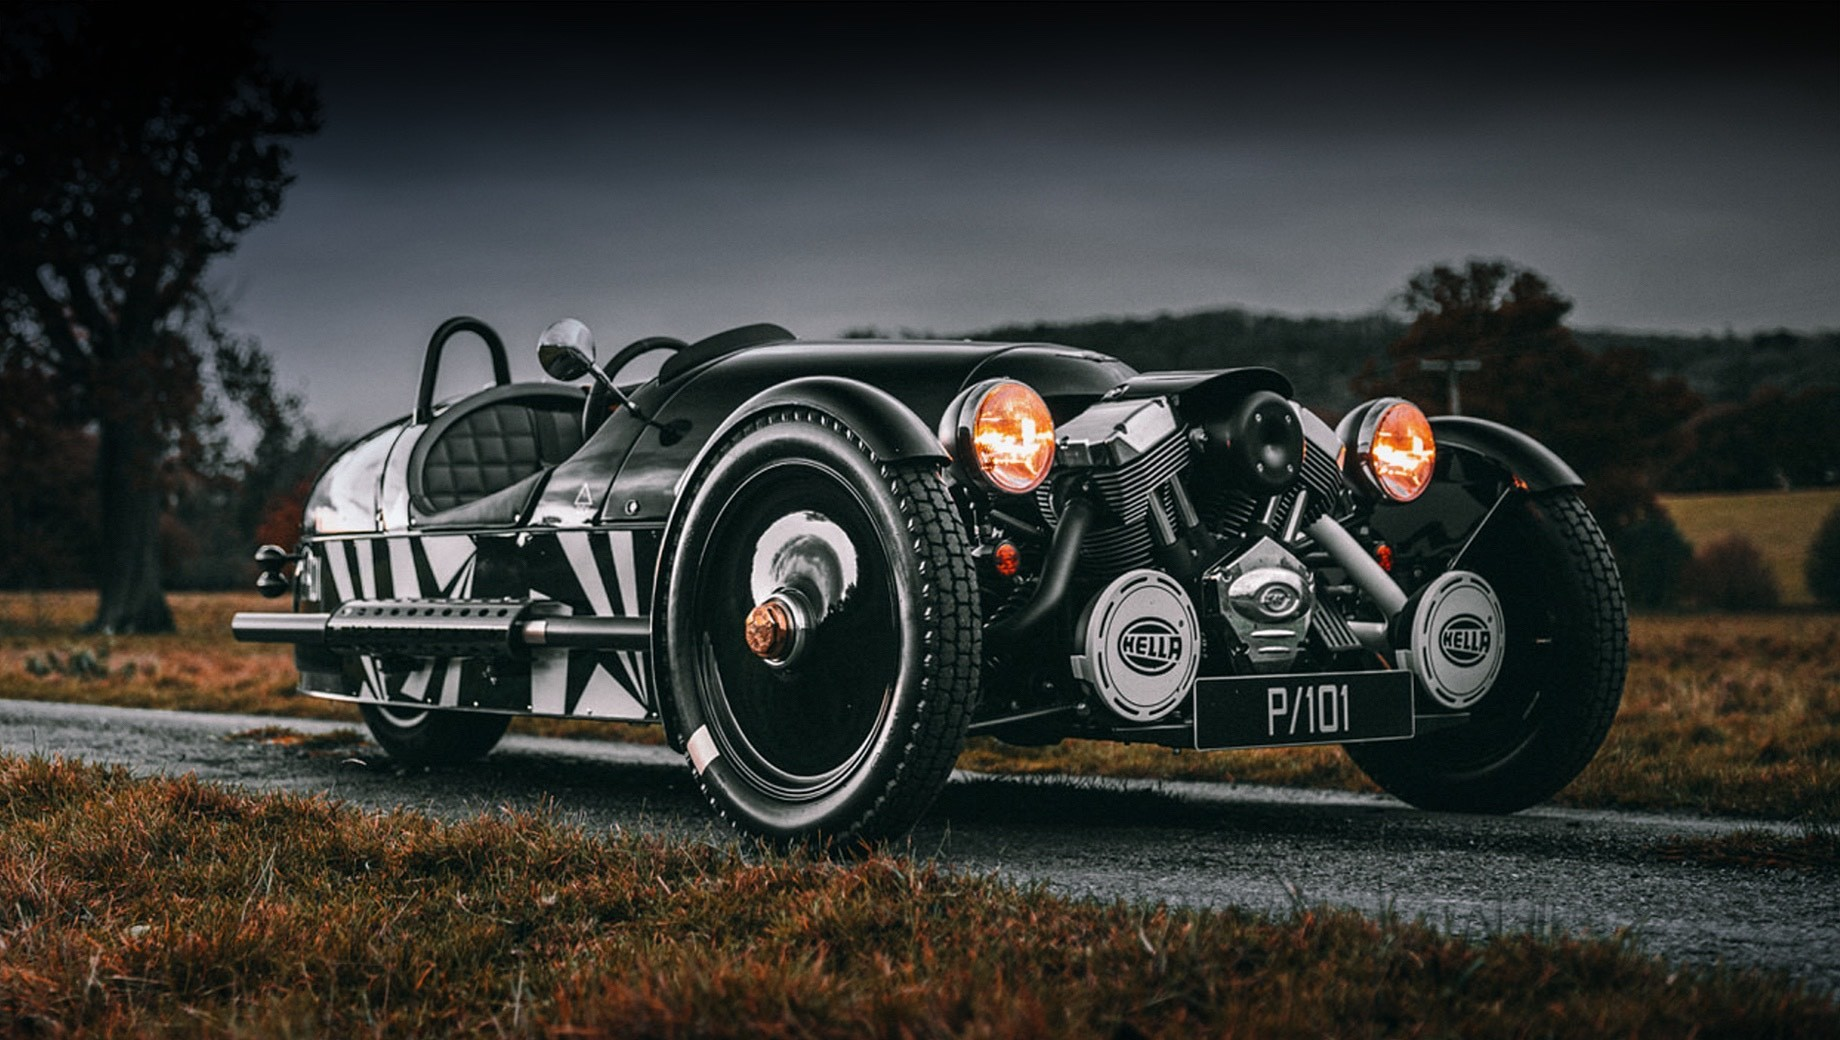 Трицикл Morgan 3 Wheeler уйдёт под гнётом эконорм